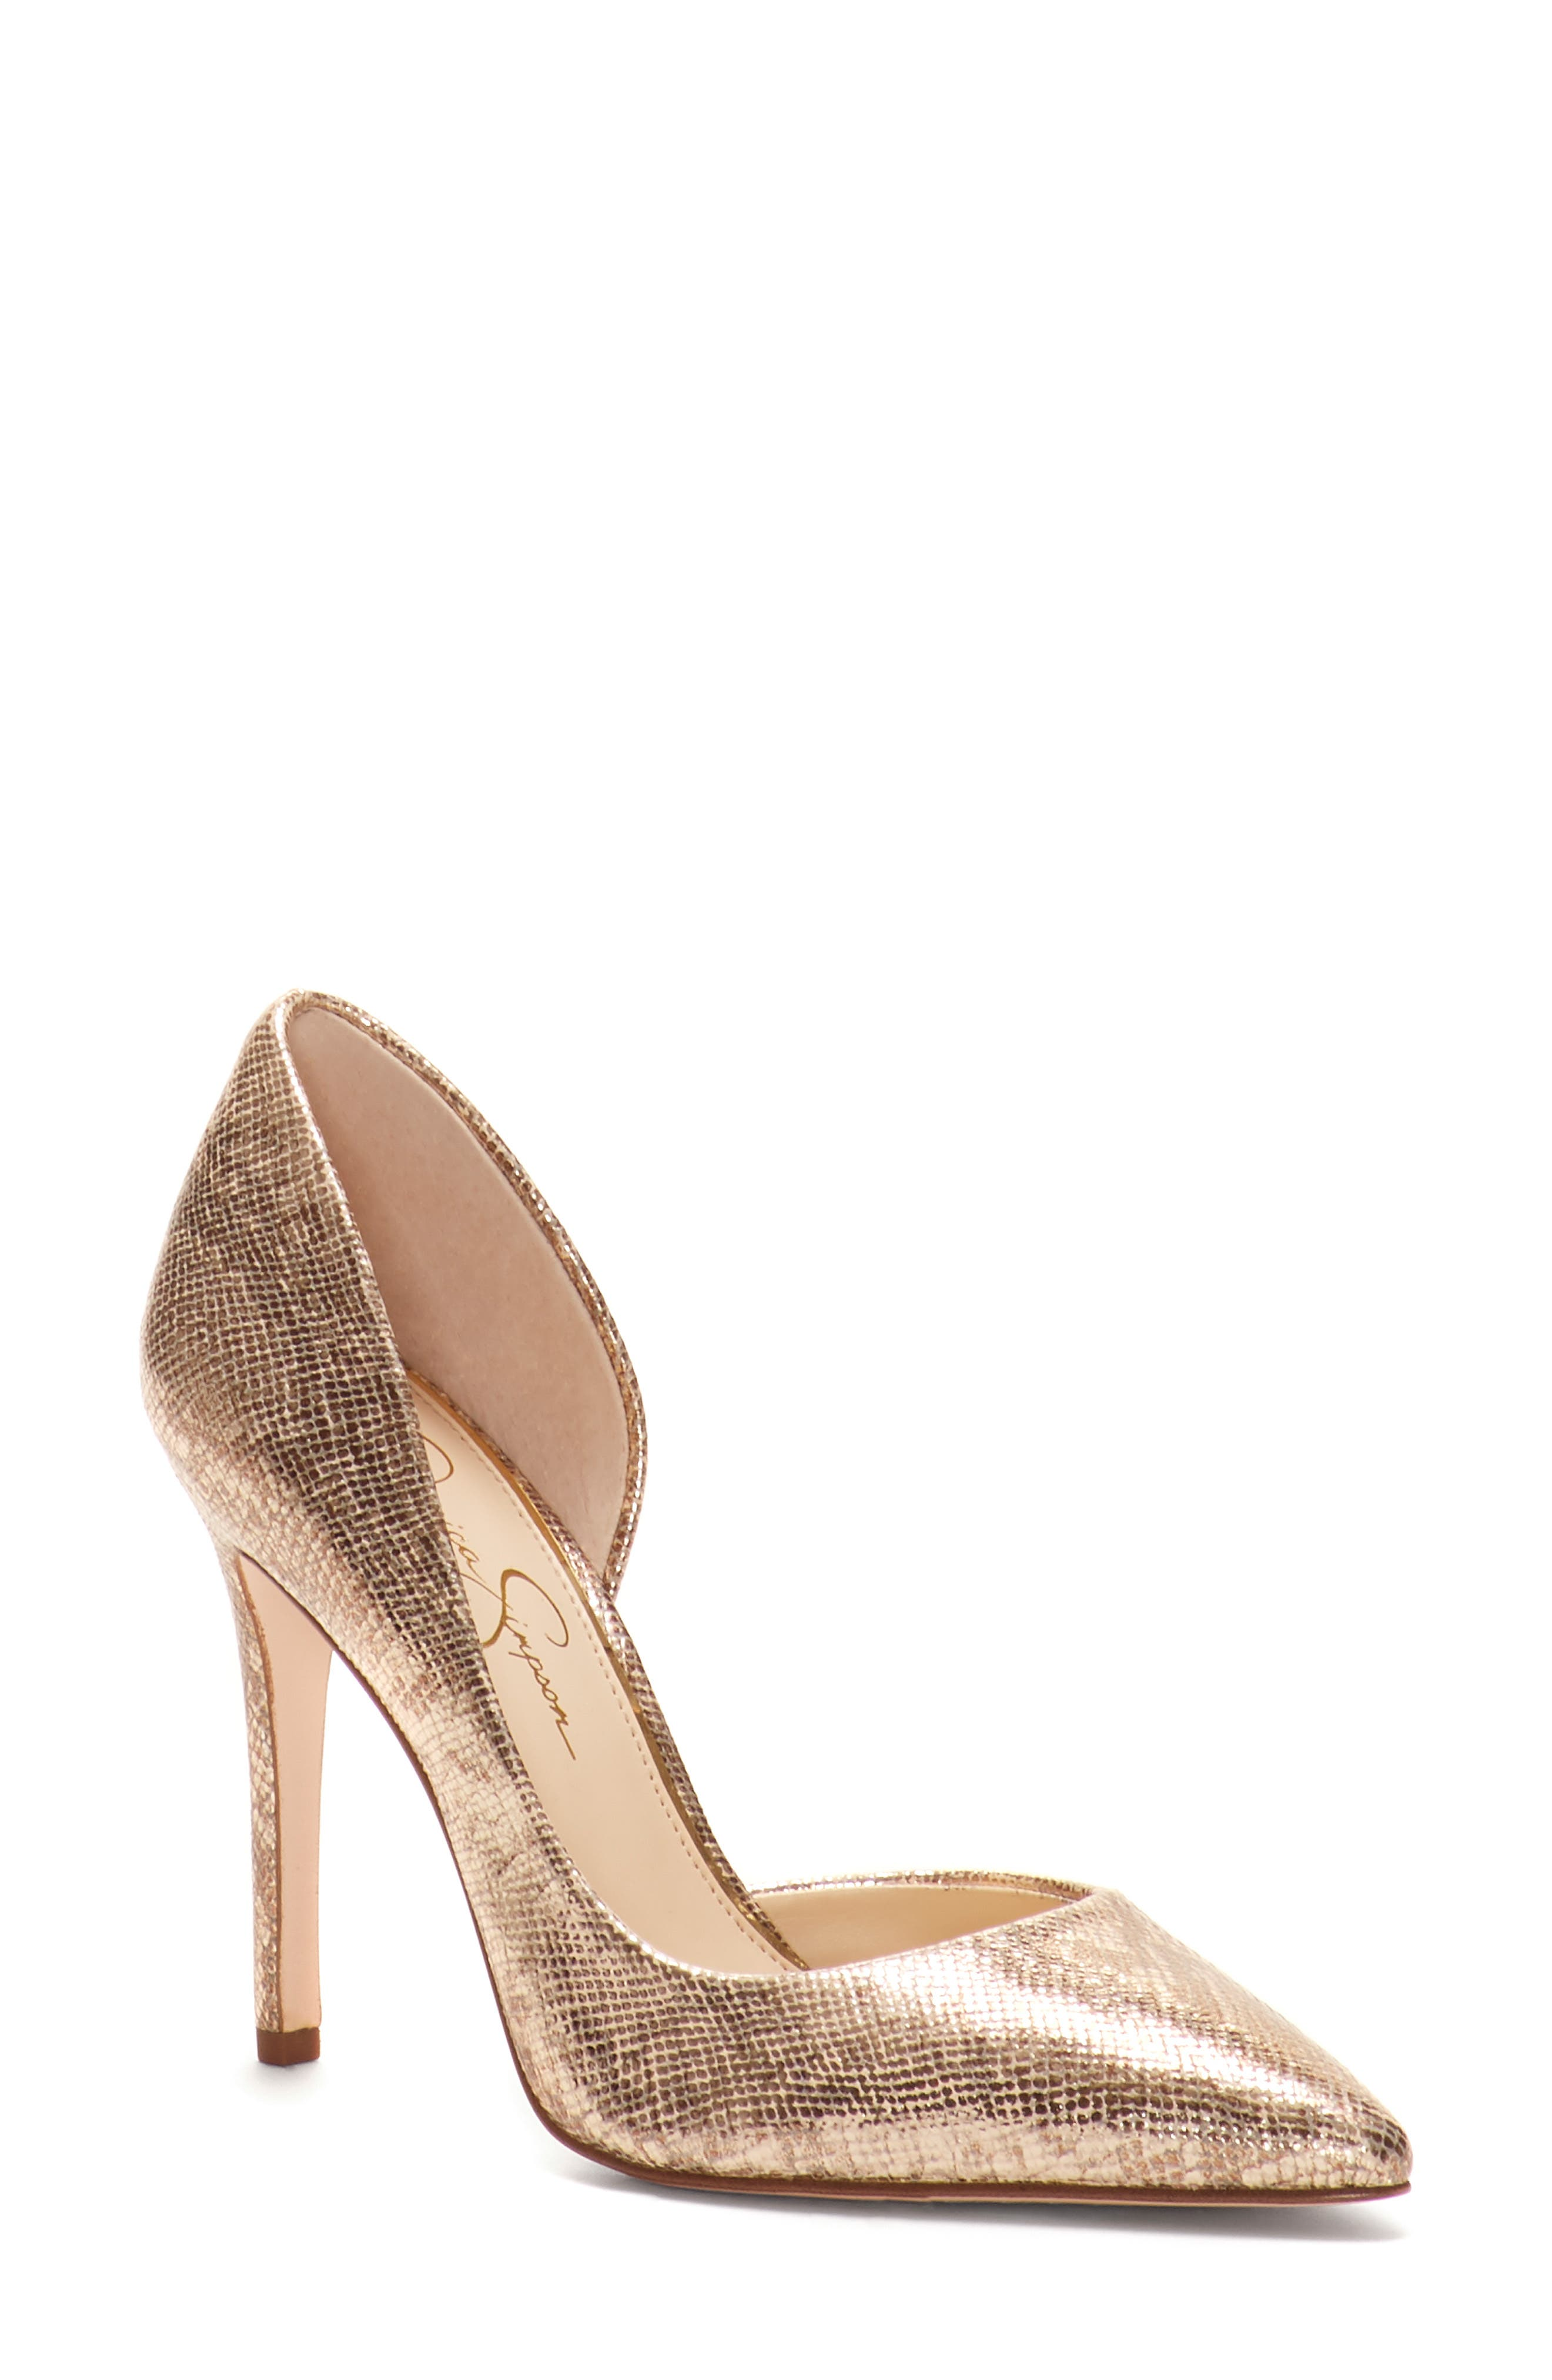 JESSICA SIMPSON Pheona Pump, Main, color, KARAT GOLD